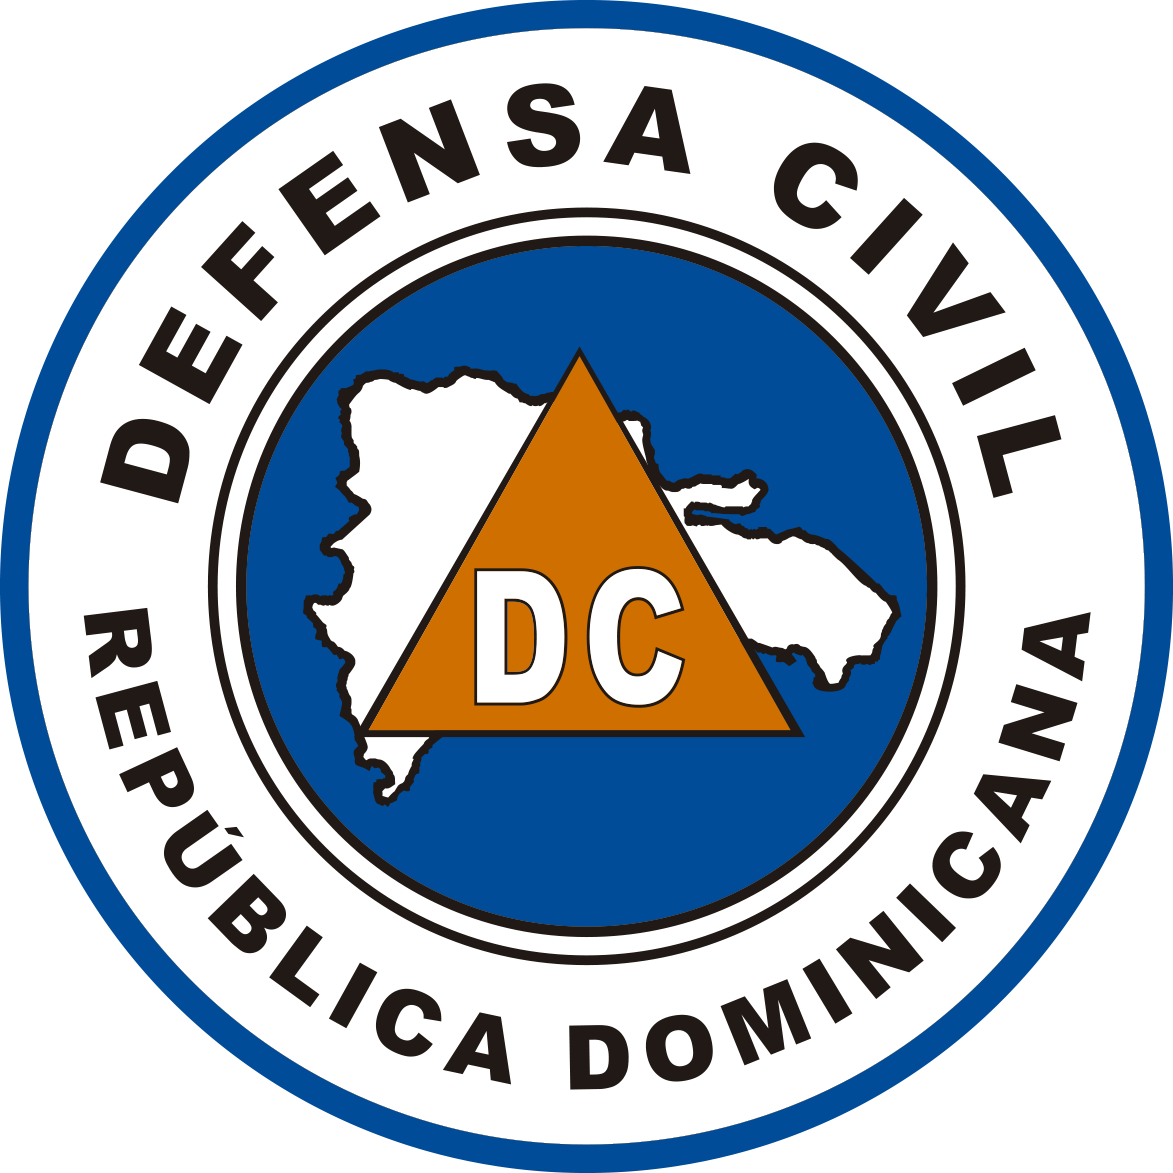 defensa-civil-de-la-republica-dominicana